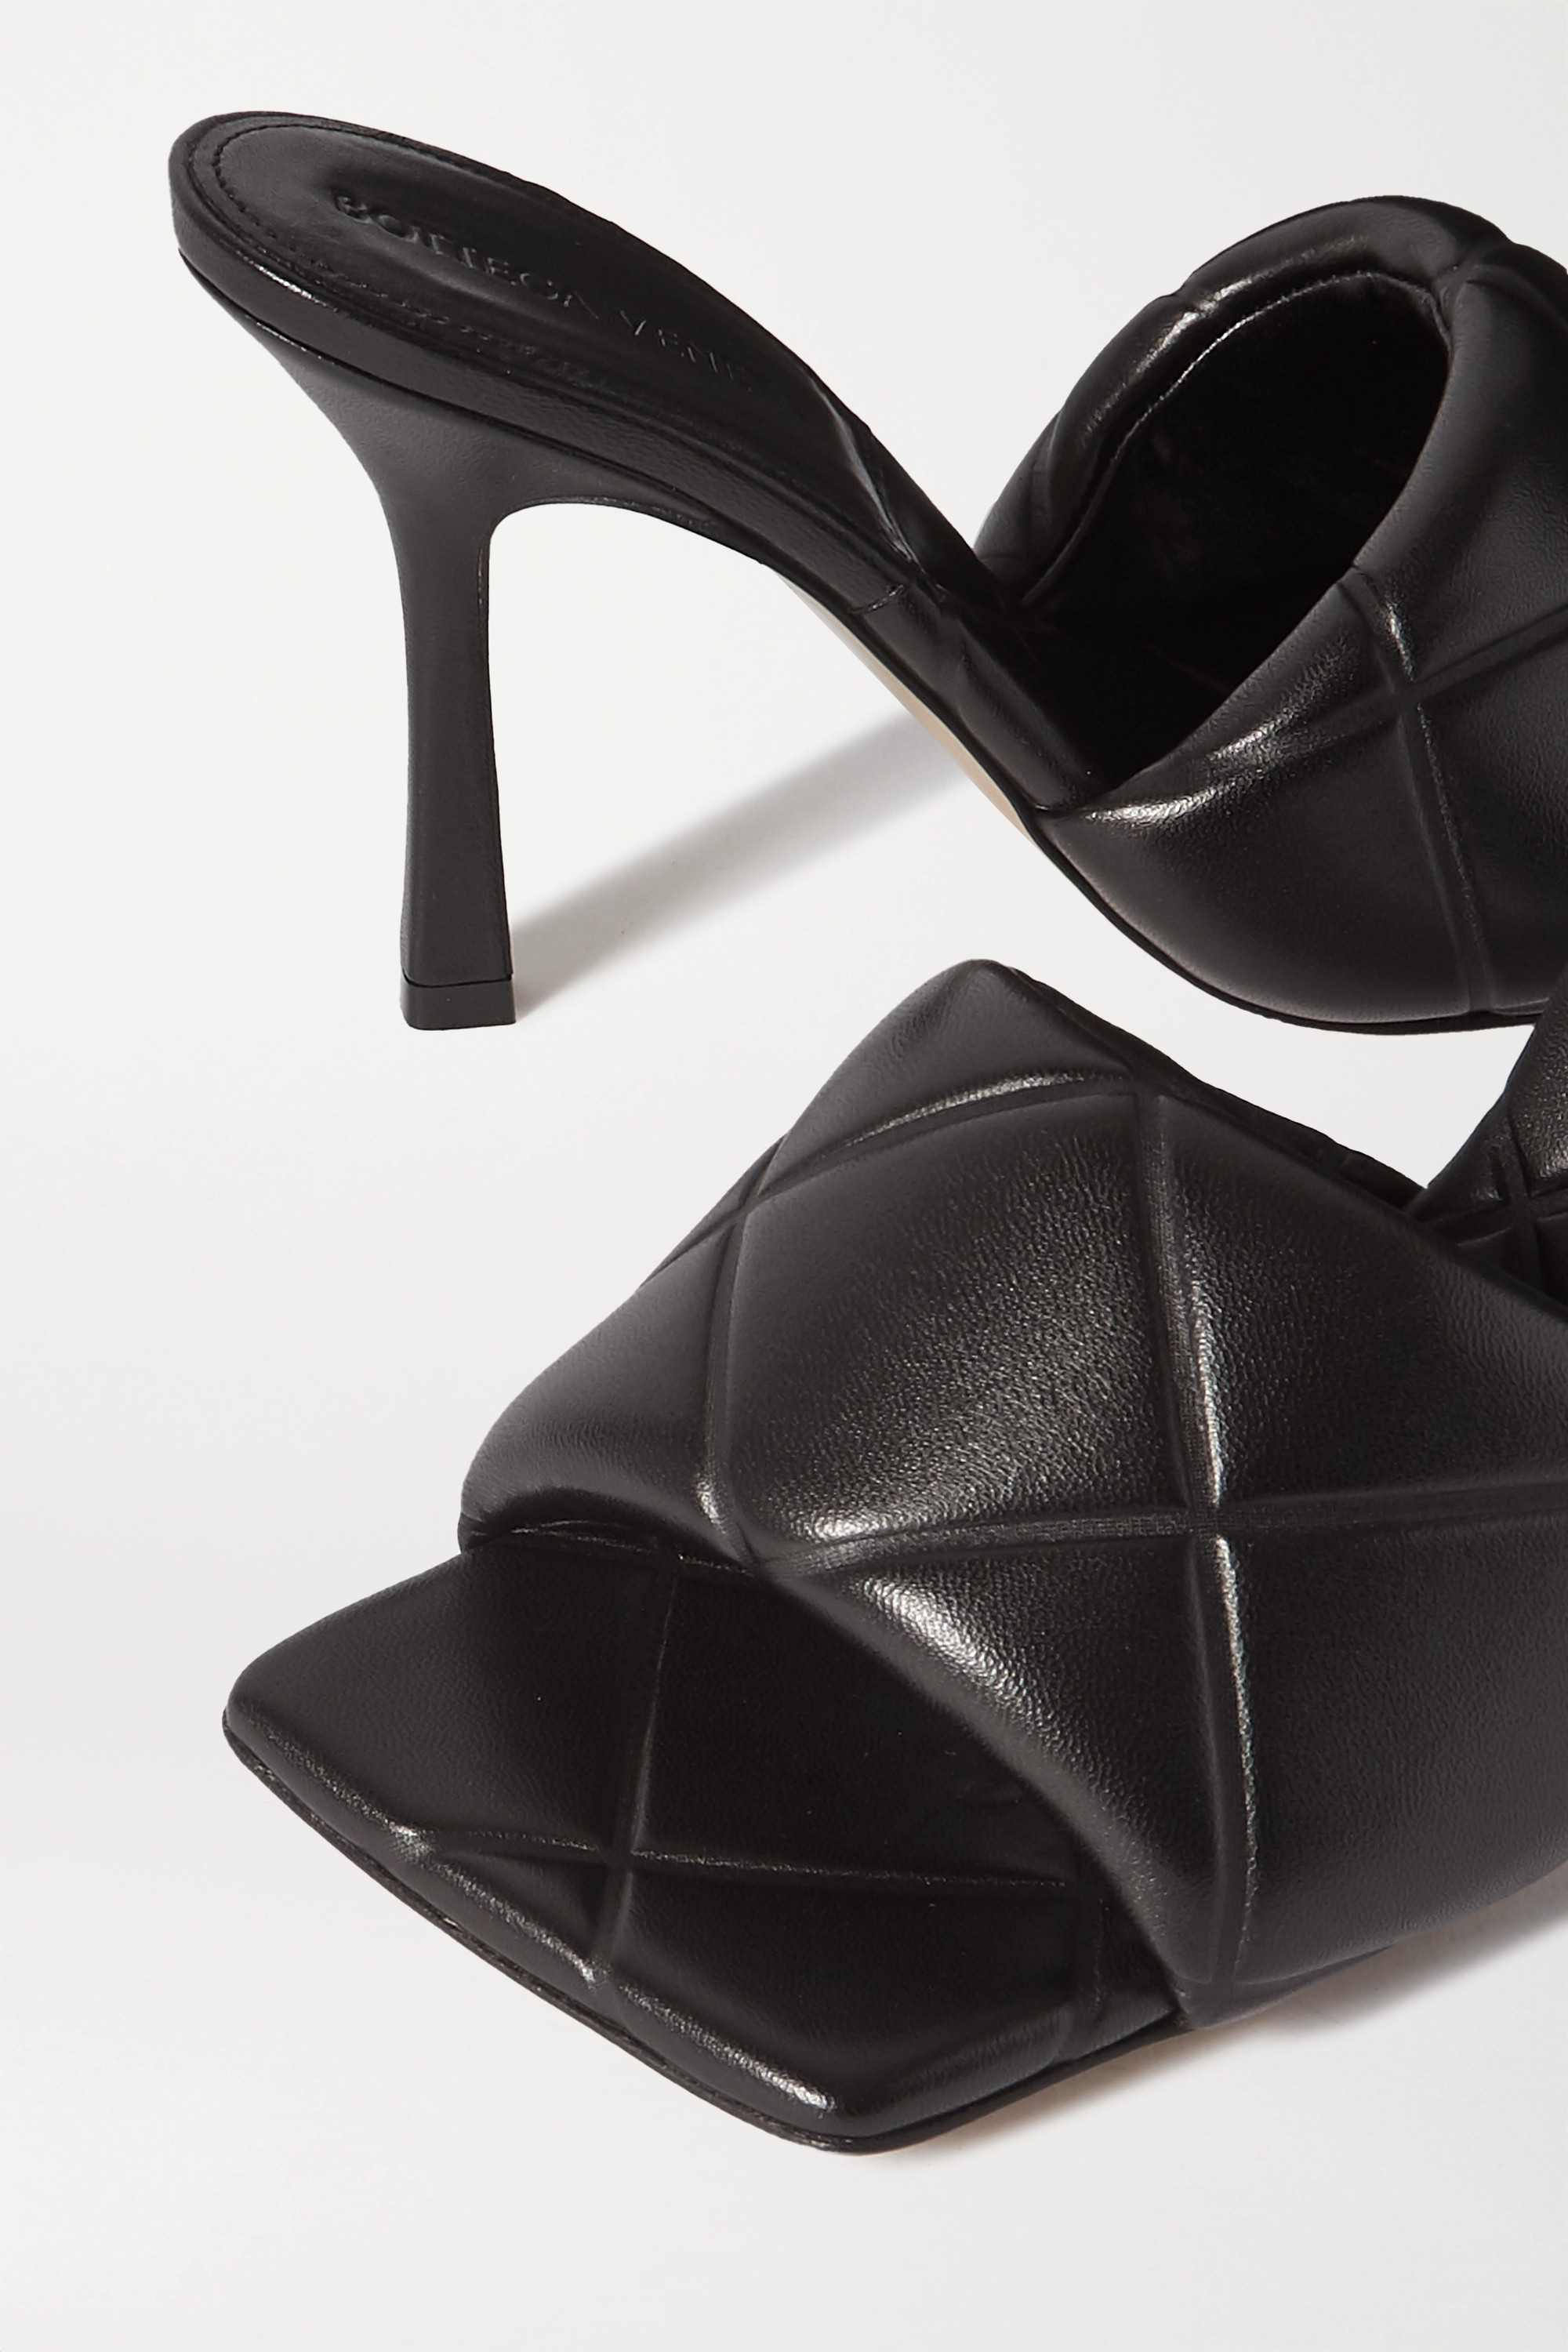 Bottega Veneta Debossed leather mules